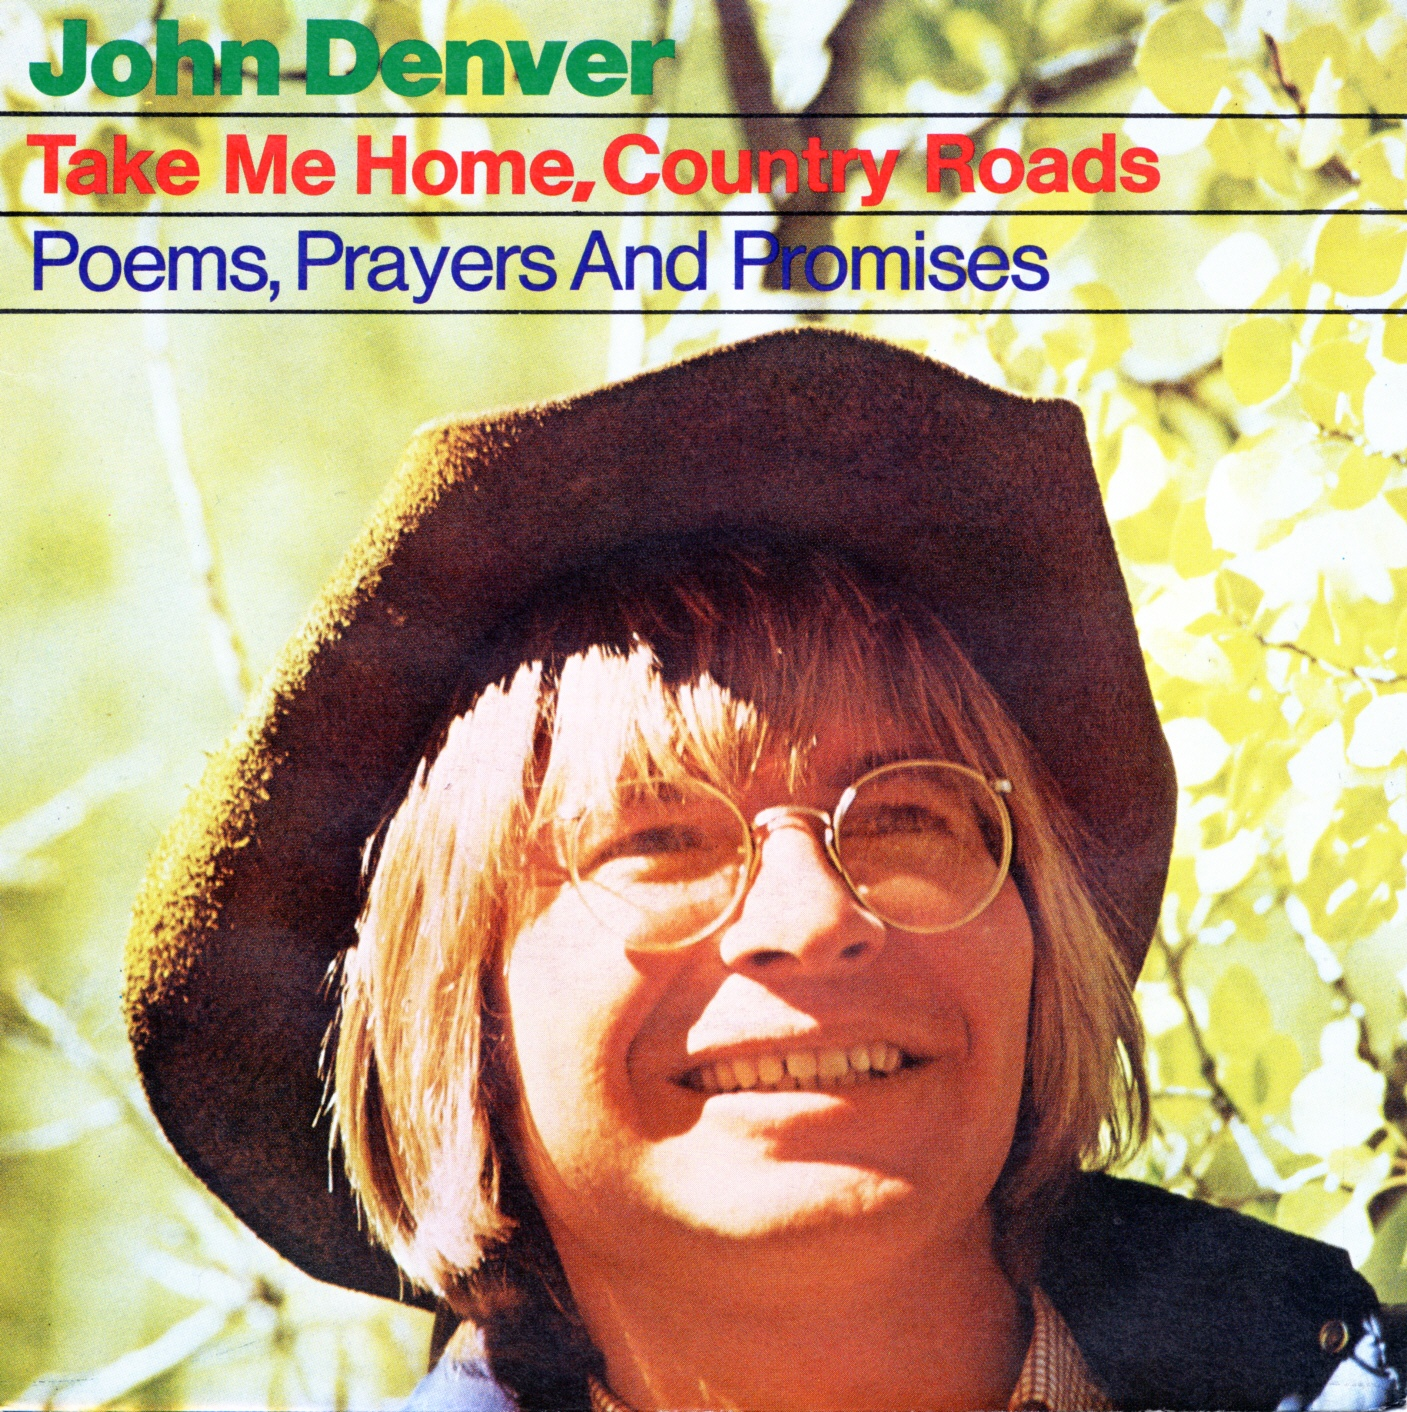 Cover: Take me home country roads, John Denver